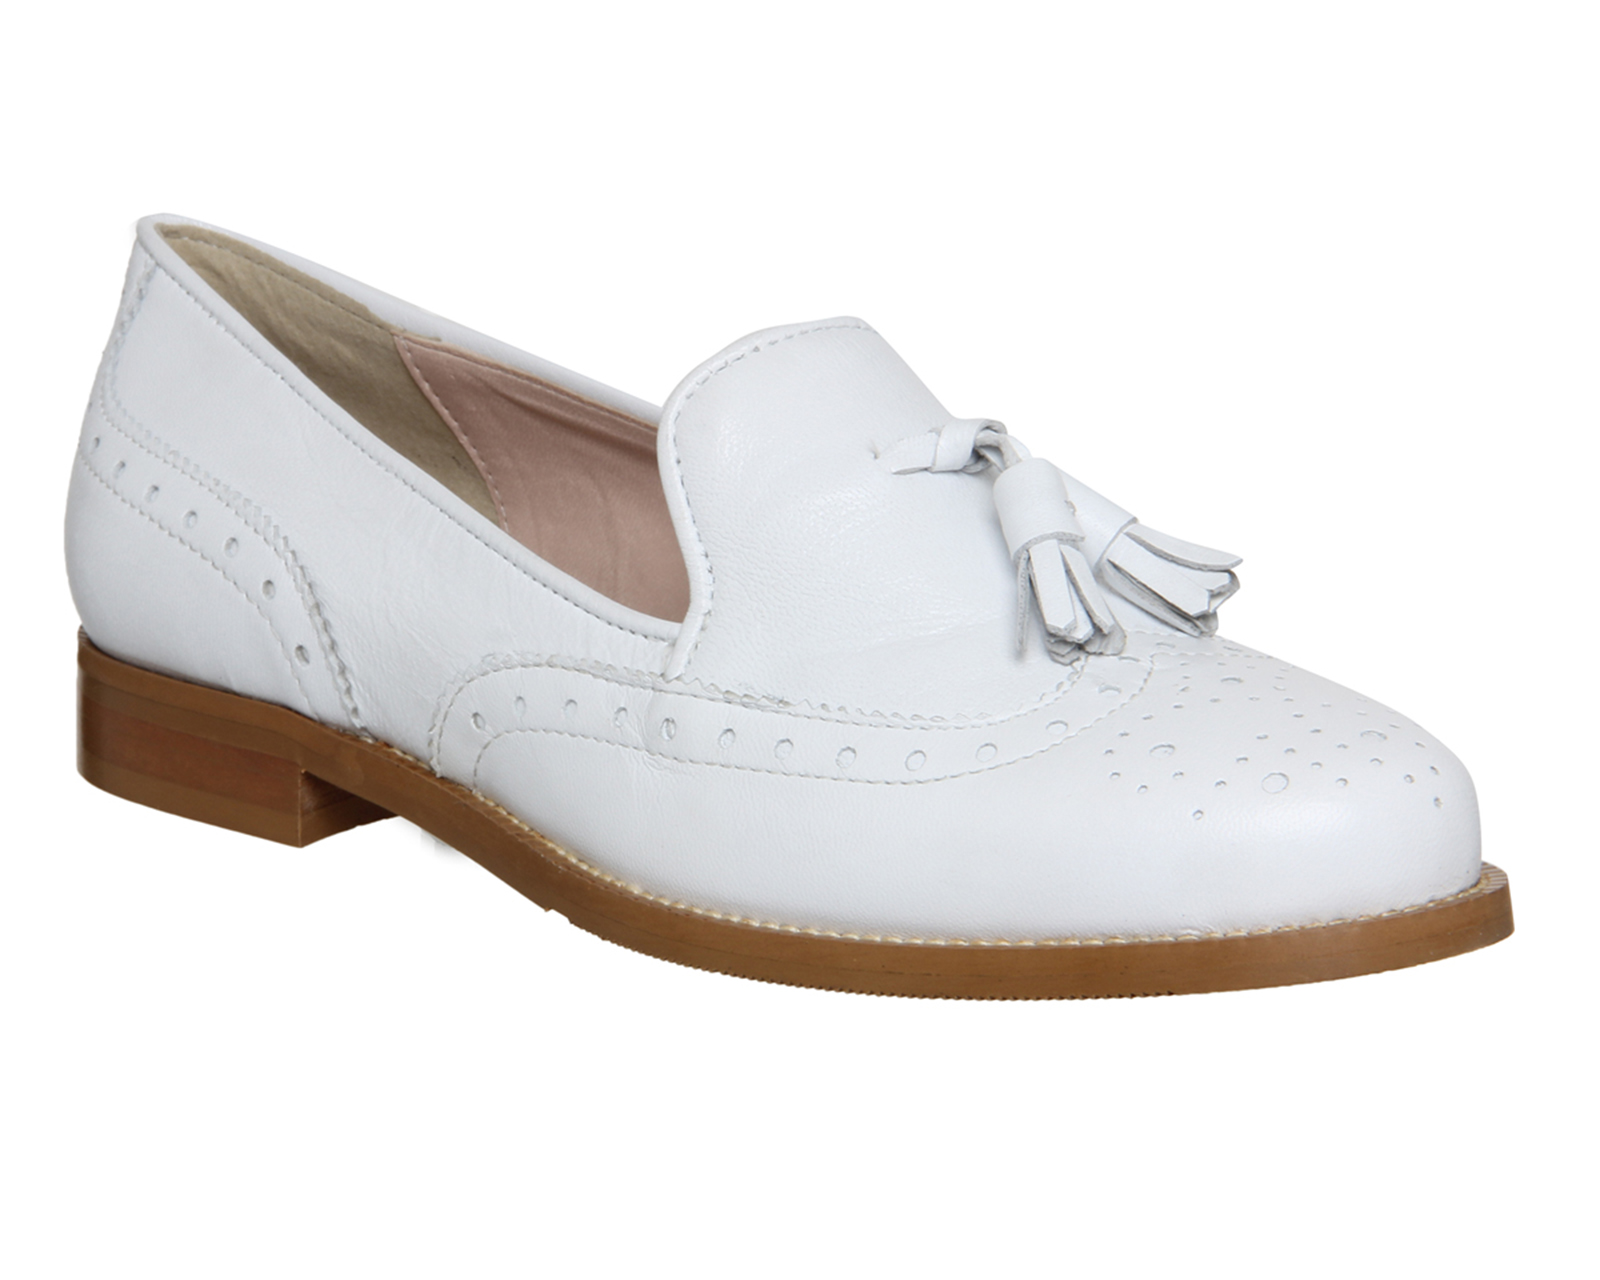 Shop for white women loafers online at Target. Free shipping on purchases over $35 and save 5% every day with your Target REDcard.